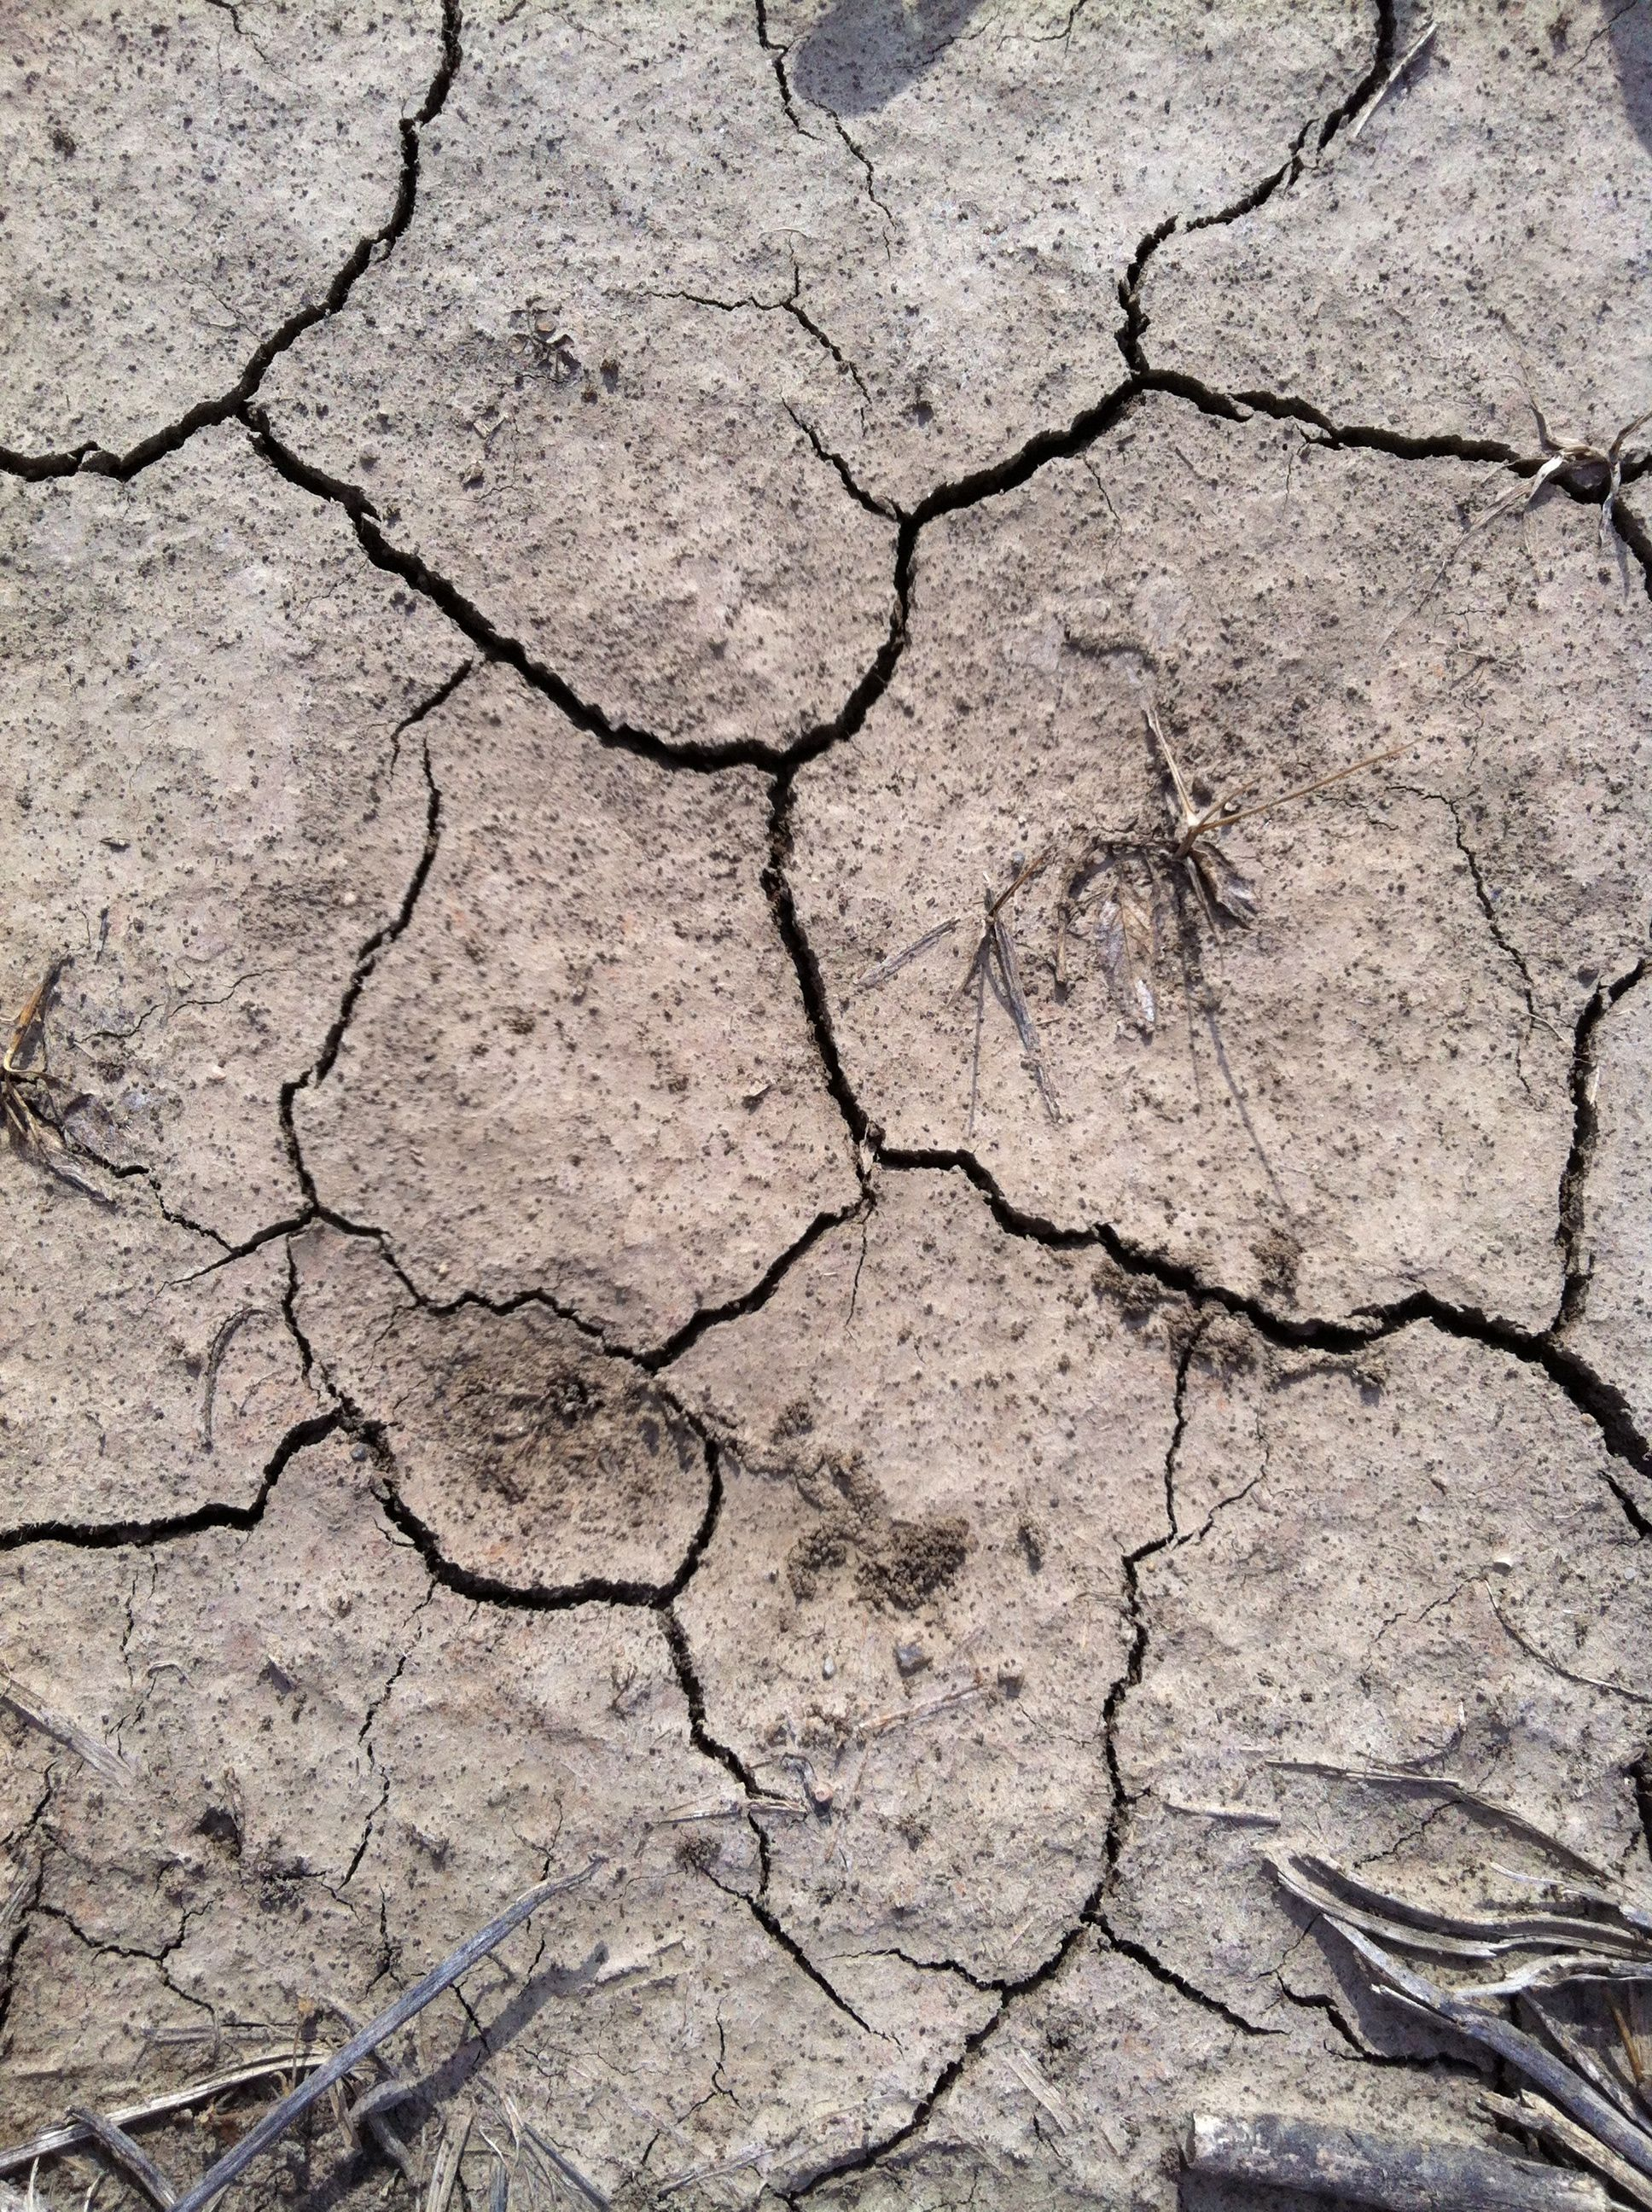 very dry to dry